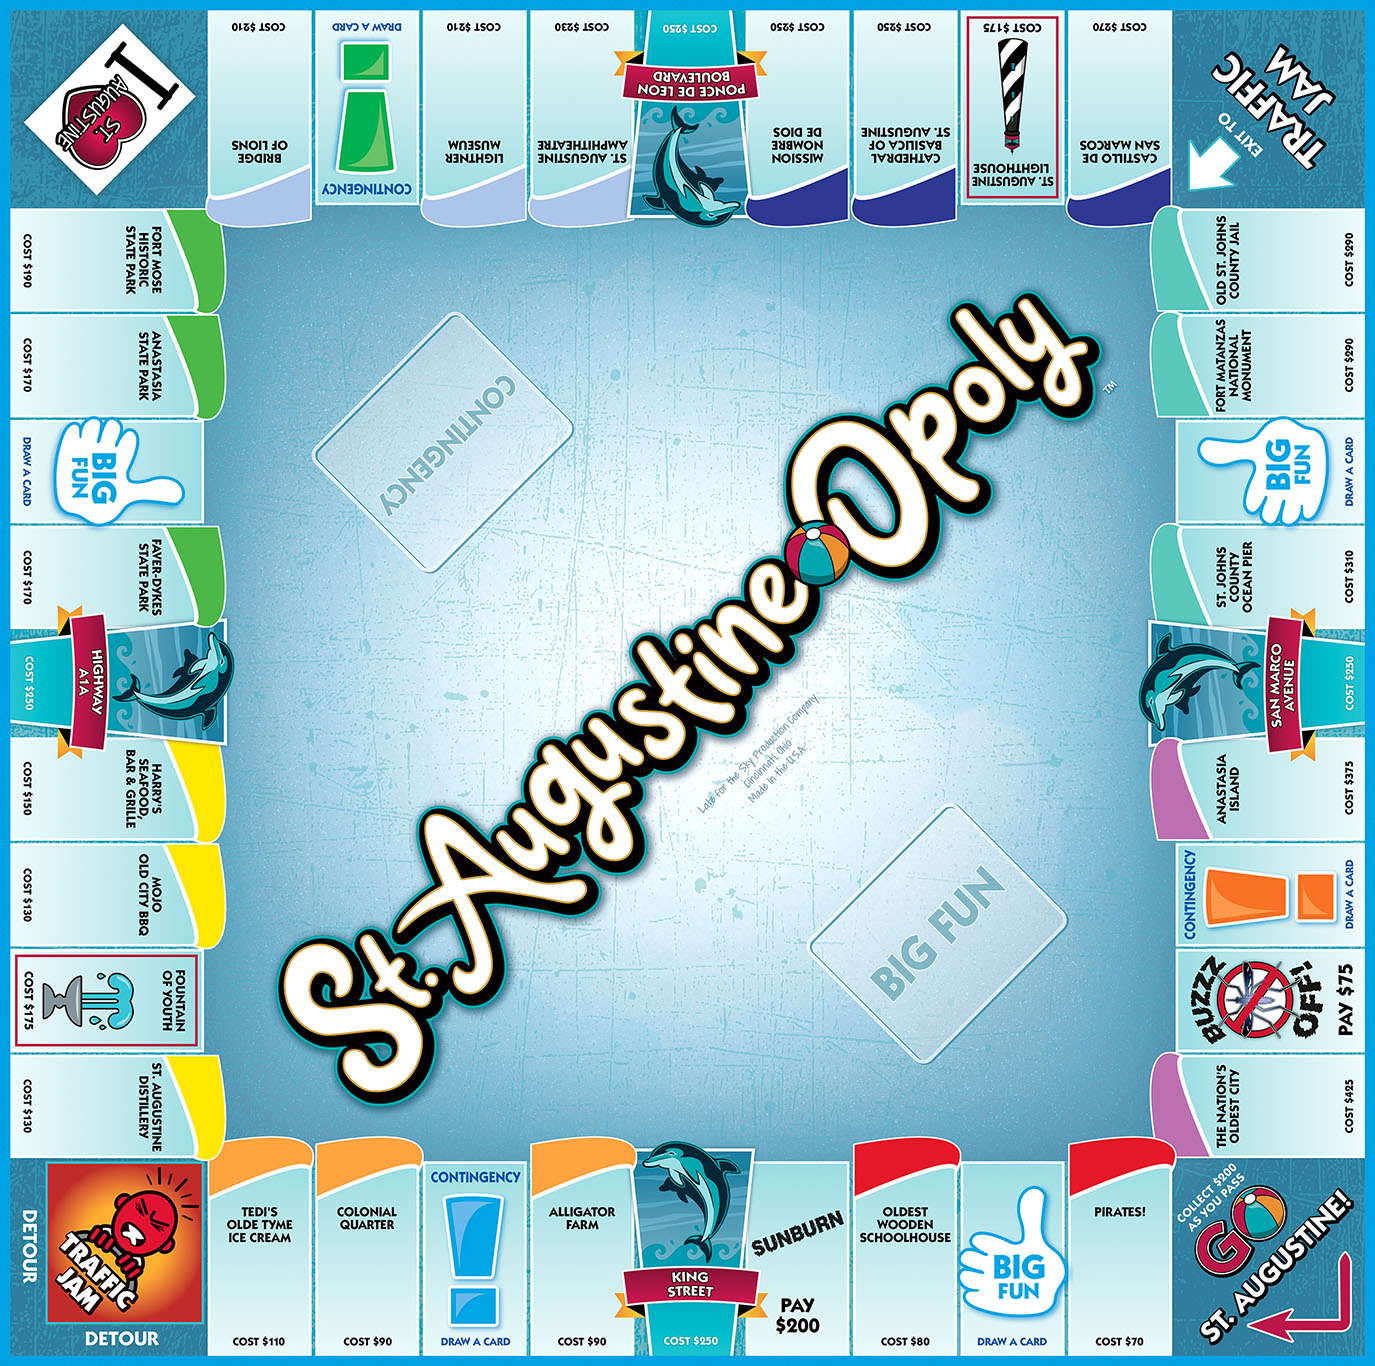 ST. AUGUSTINE-OPOLY Board Game